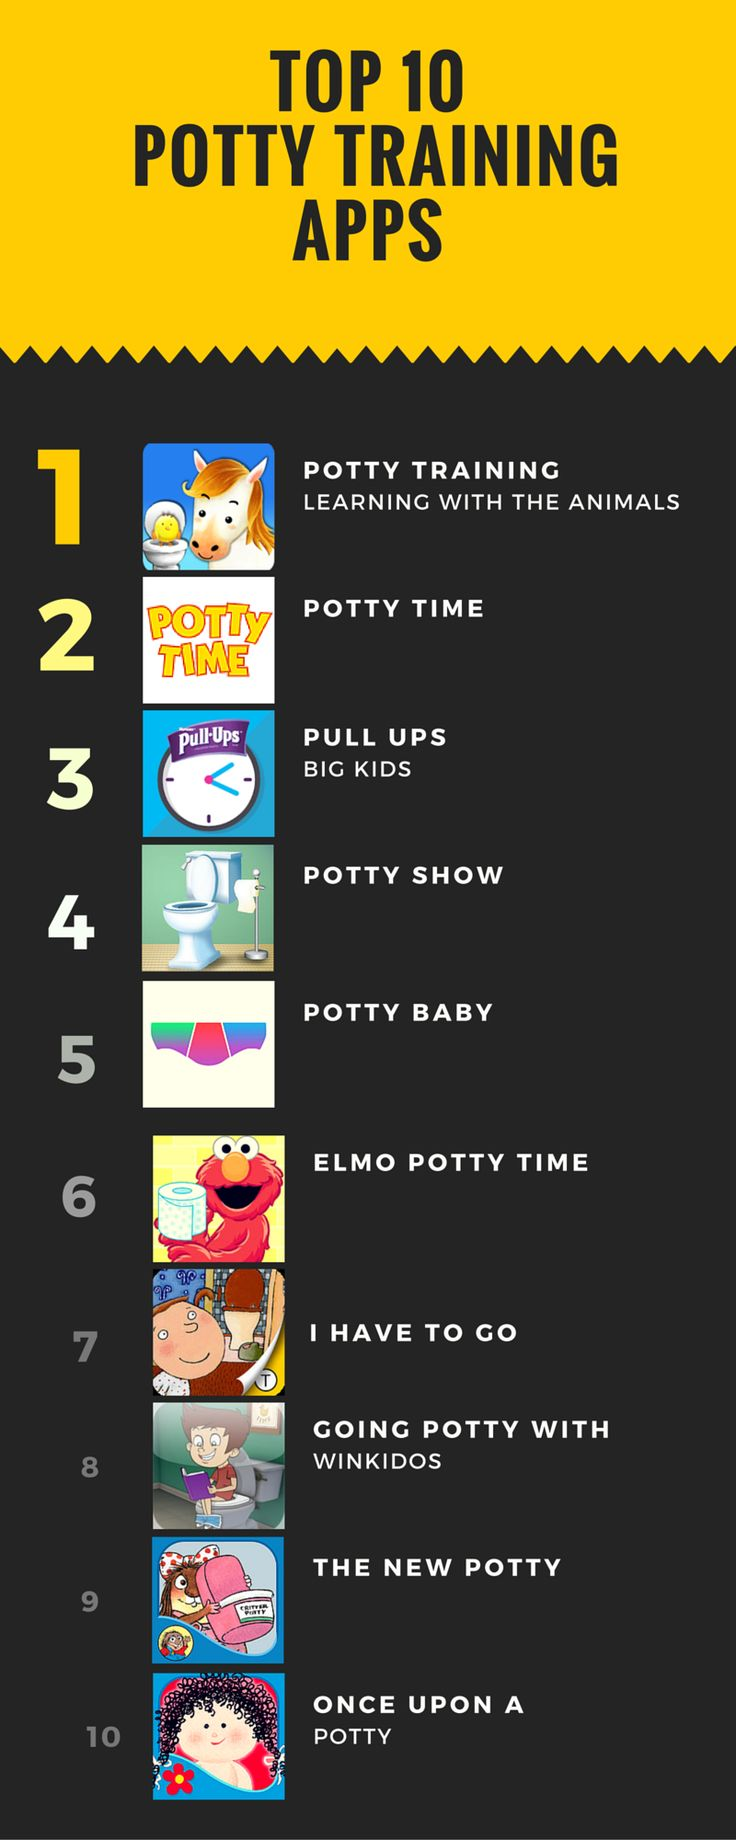 Those of you who aren't currently potty training a child might not look upon this list with the same glee as the parents of a three-year-old boy who refuses to pee anywhere except in his diaper or off the back deck. Um, not that I've been there... but if